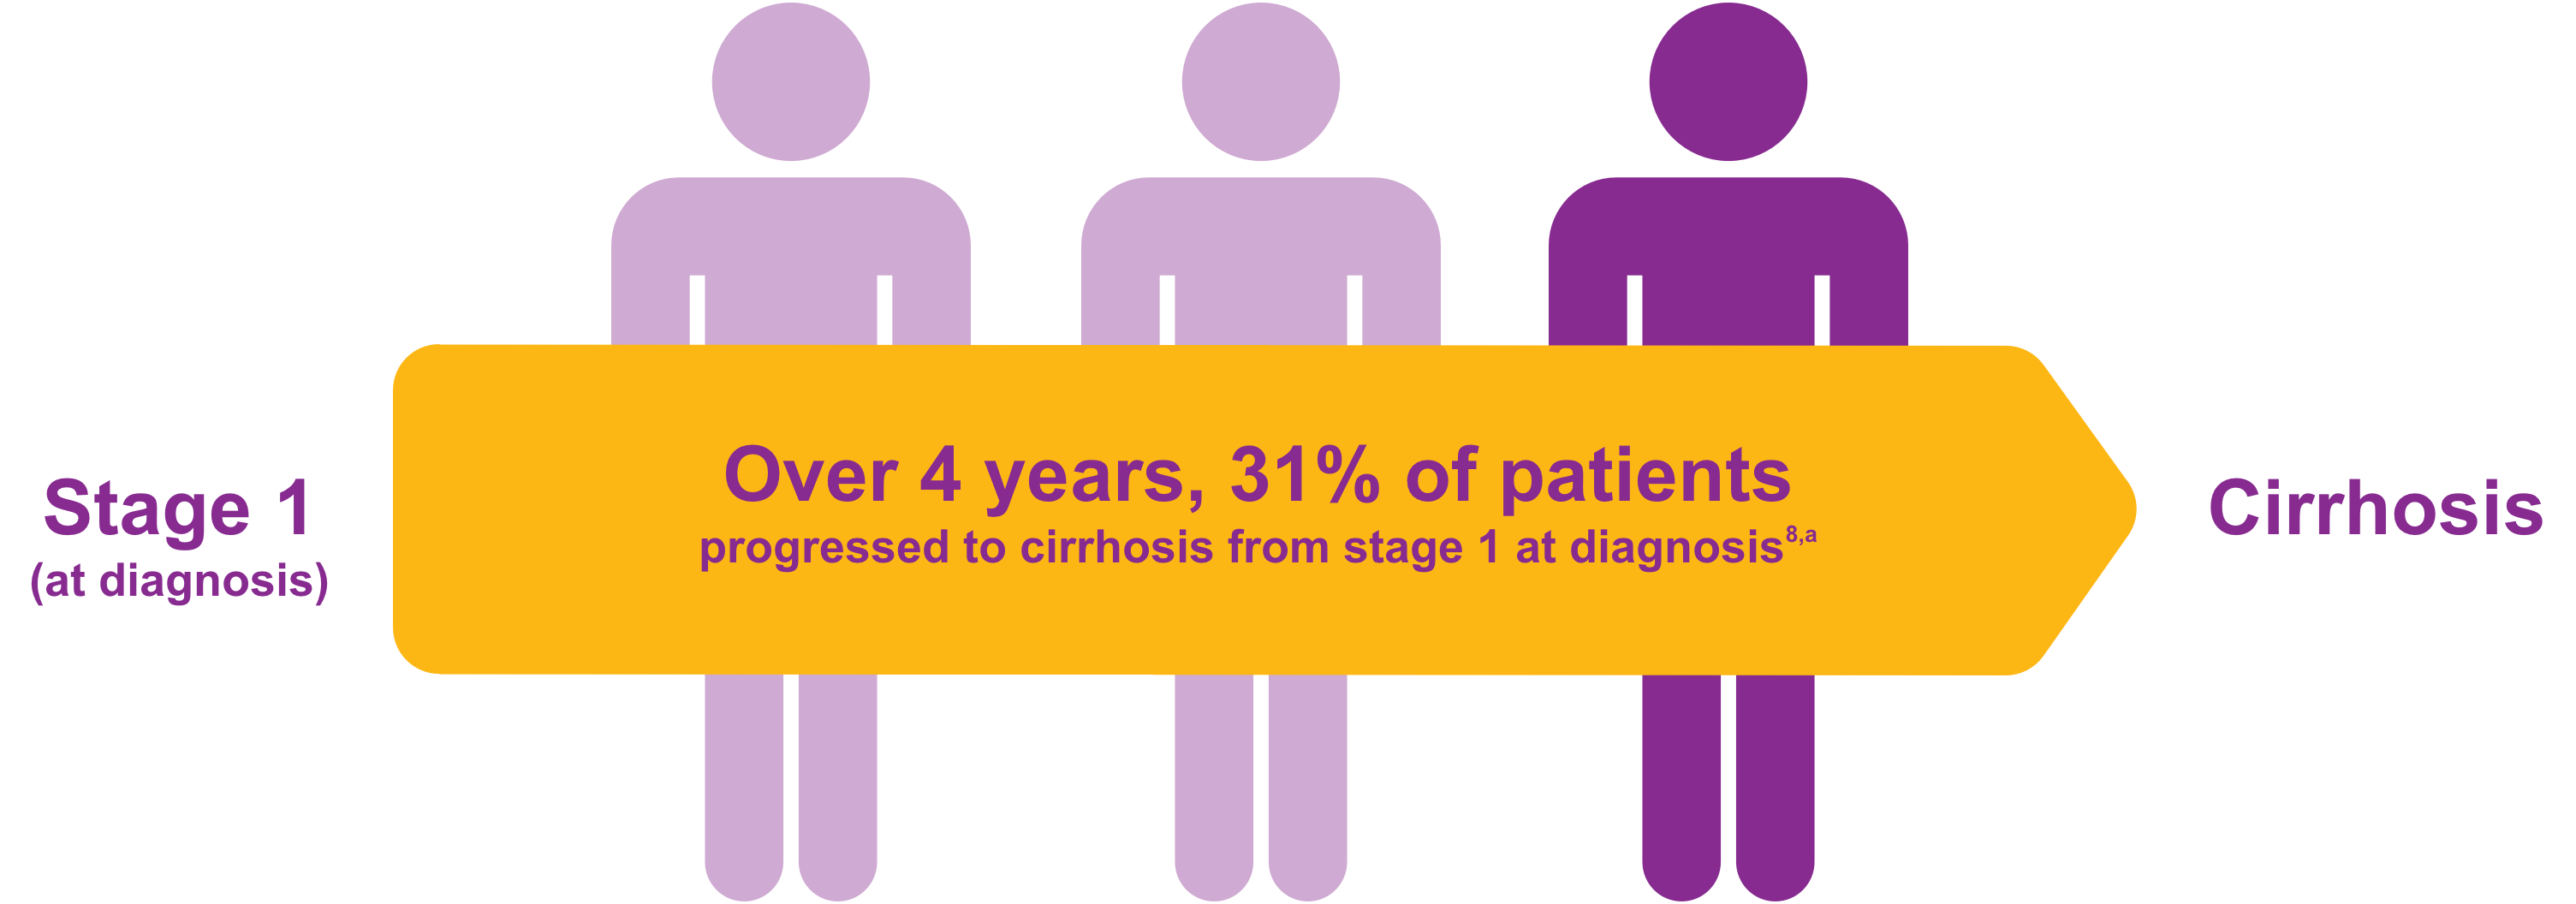 Image showing progression from PBC diagnosis to cirrhosis